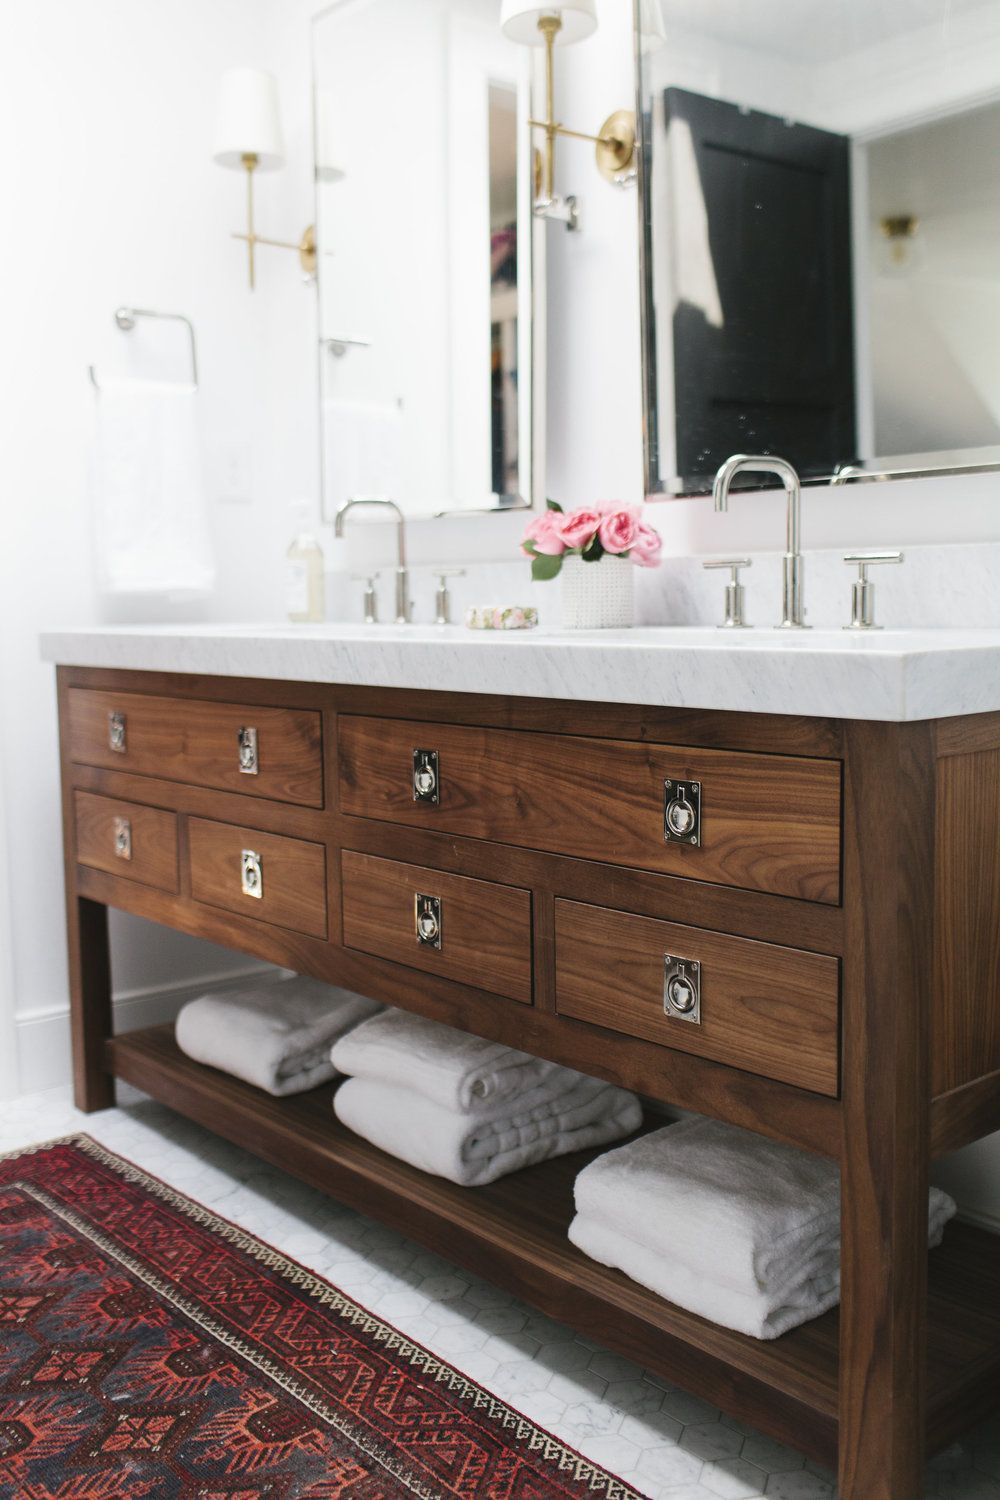 Silver hardware roundup wood vanity nature and double sinks for Bathroom ideas vanity